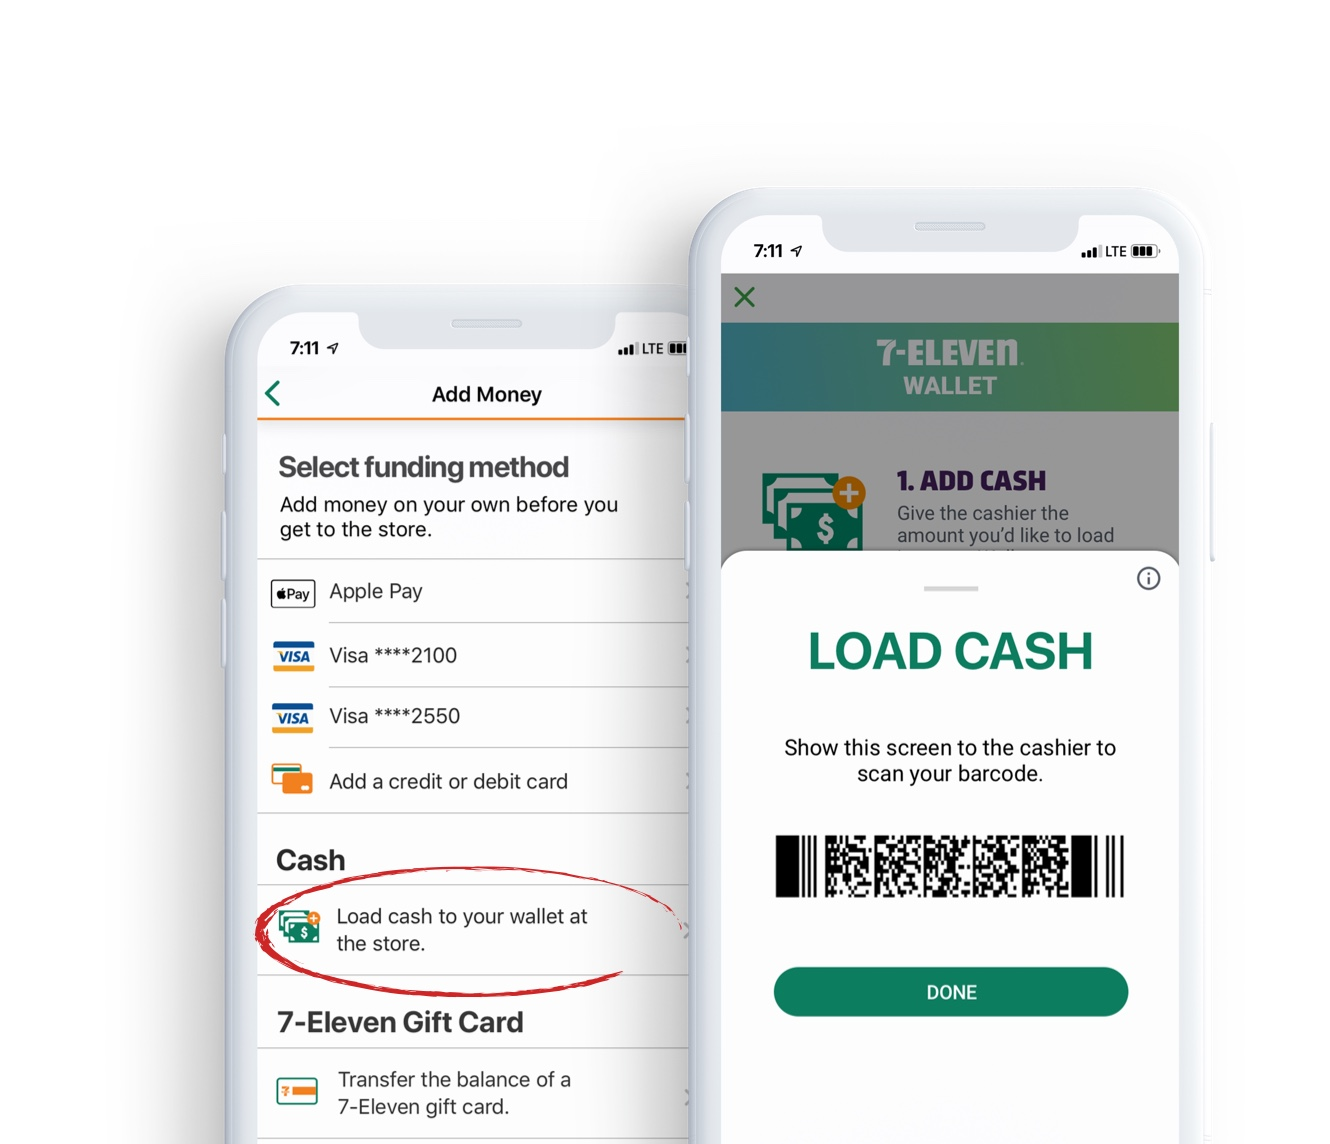 7-Eleven-wallet-app-contactless-phone-payment-how-to-load-cash.jpg